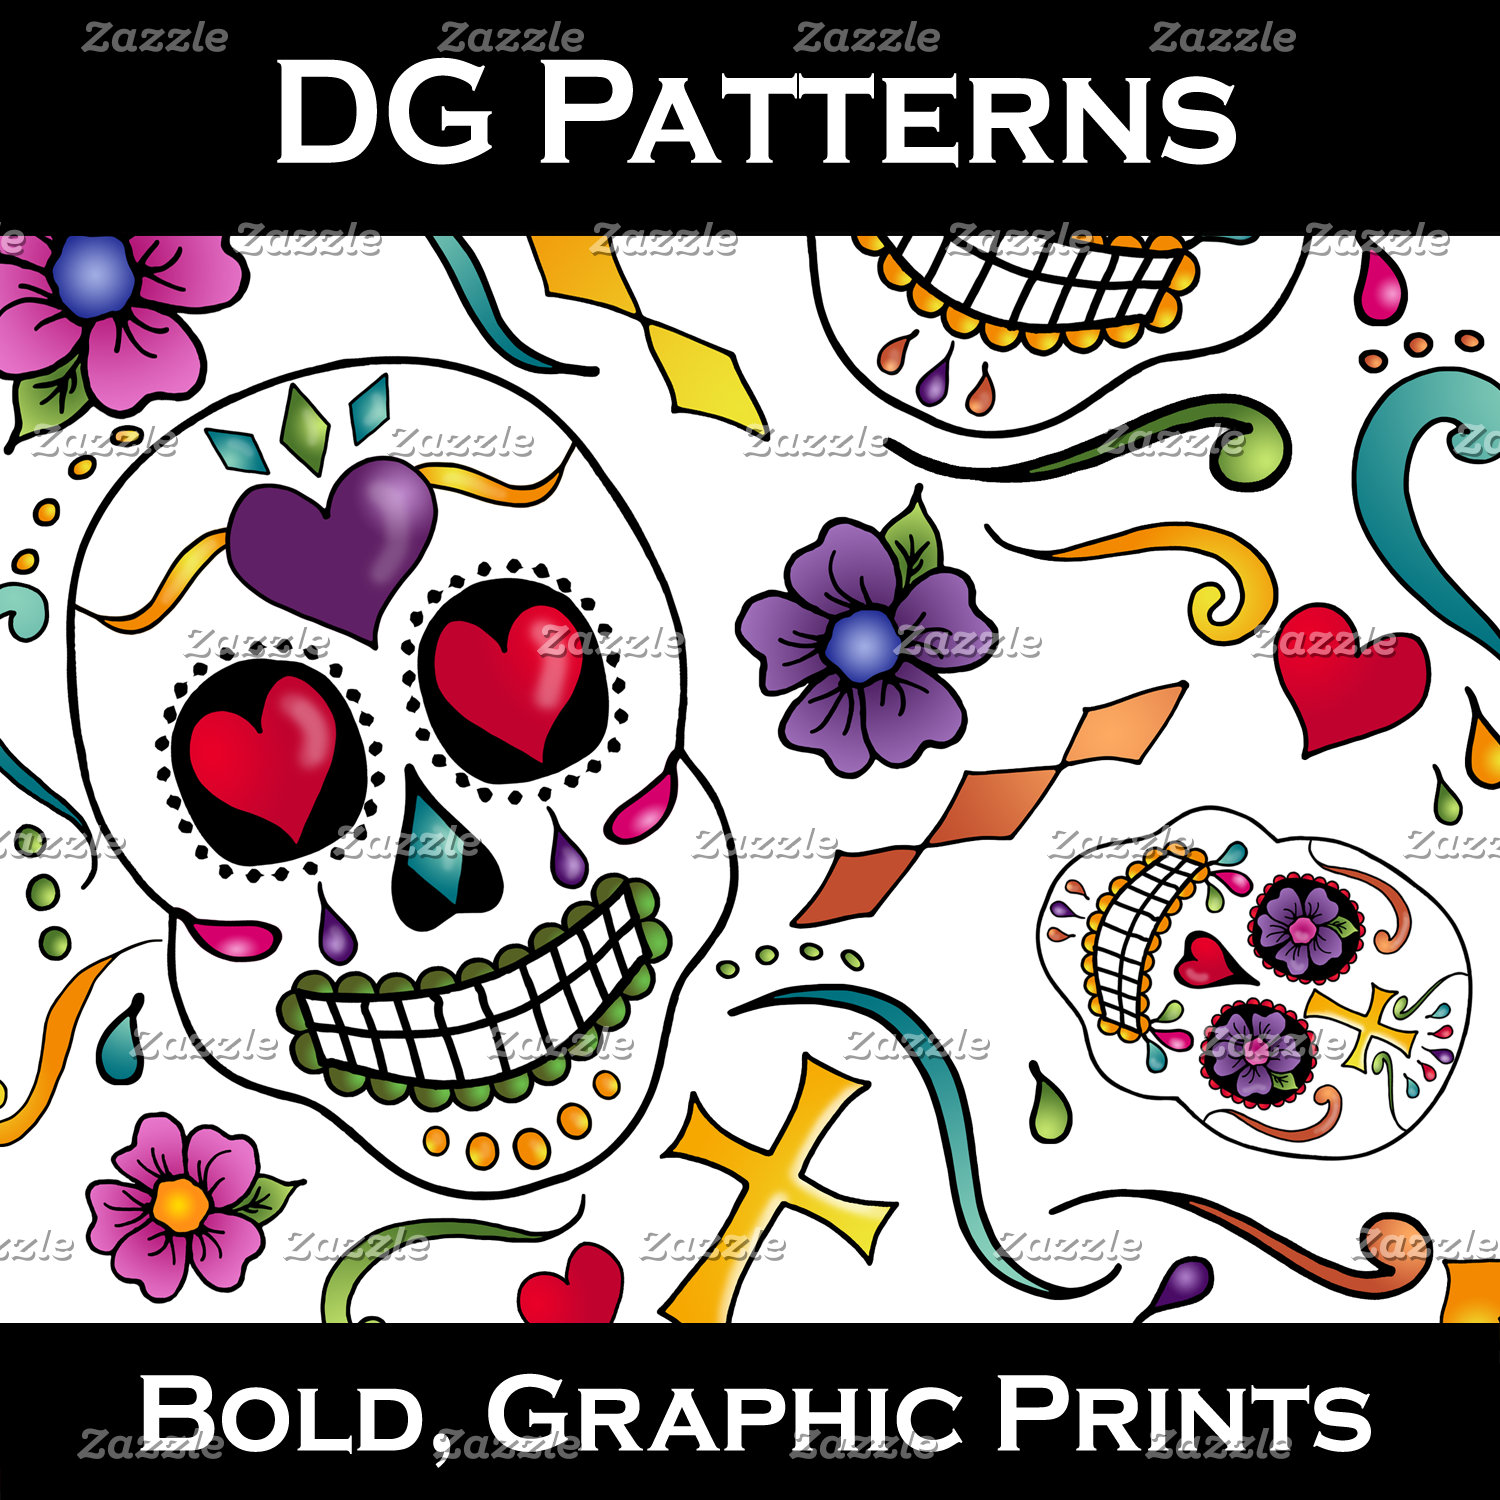 DG Patterns